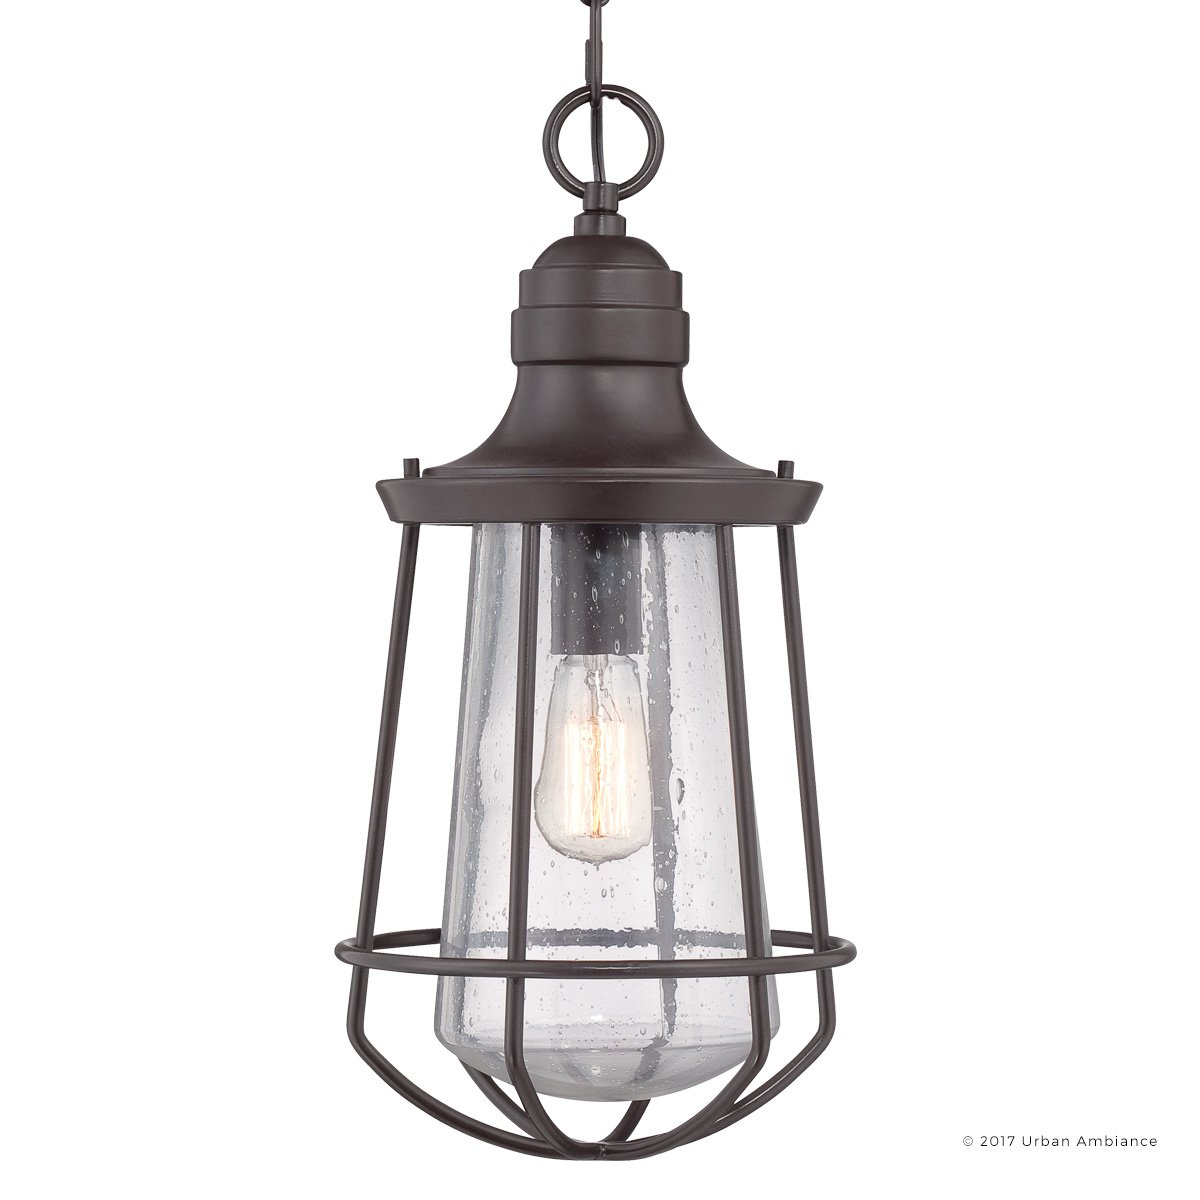 Luxury Vintage Outdoor Pendant Light, Large Size: 20''H x 9.5''W, with Nautical Style Elements, Cage Design, Estate Bronze Finish and Seeded Glass, Includes Edison Bulb, UQL1125 by Urban Ambiance